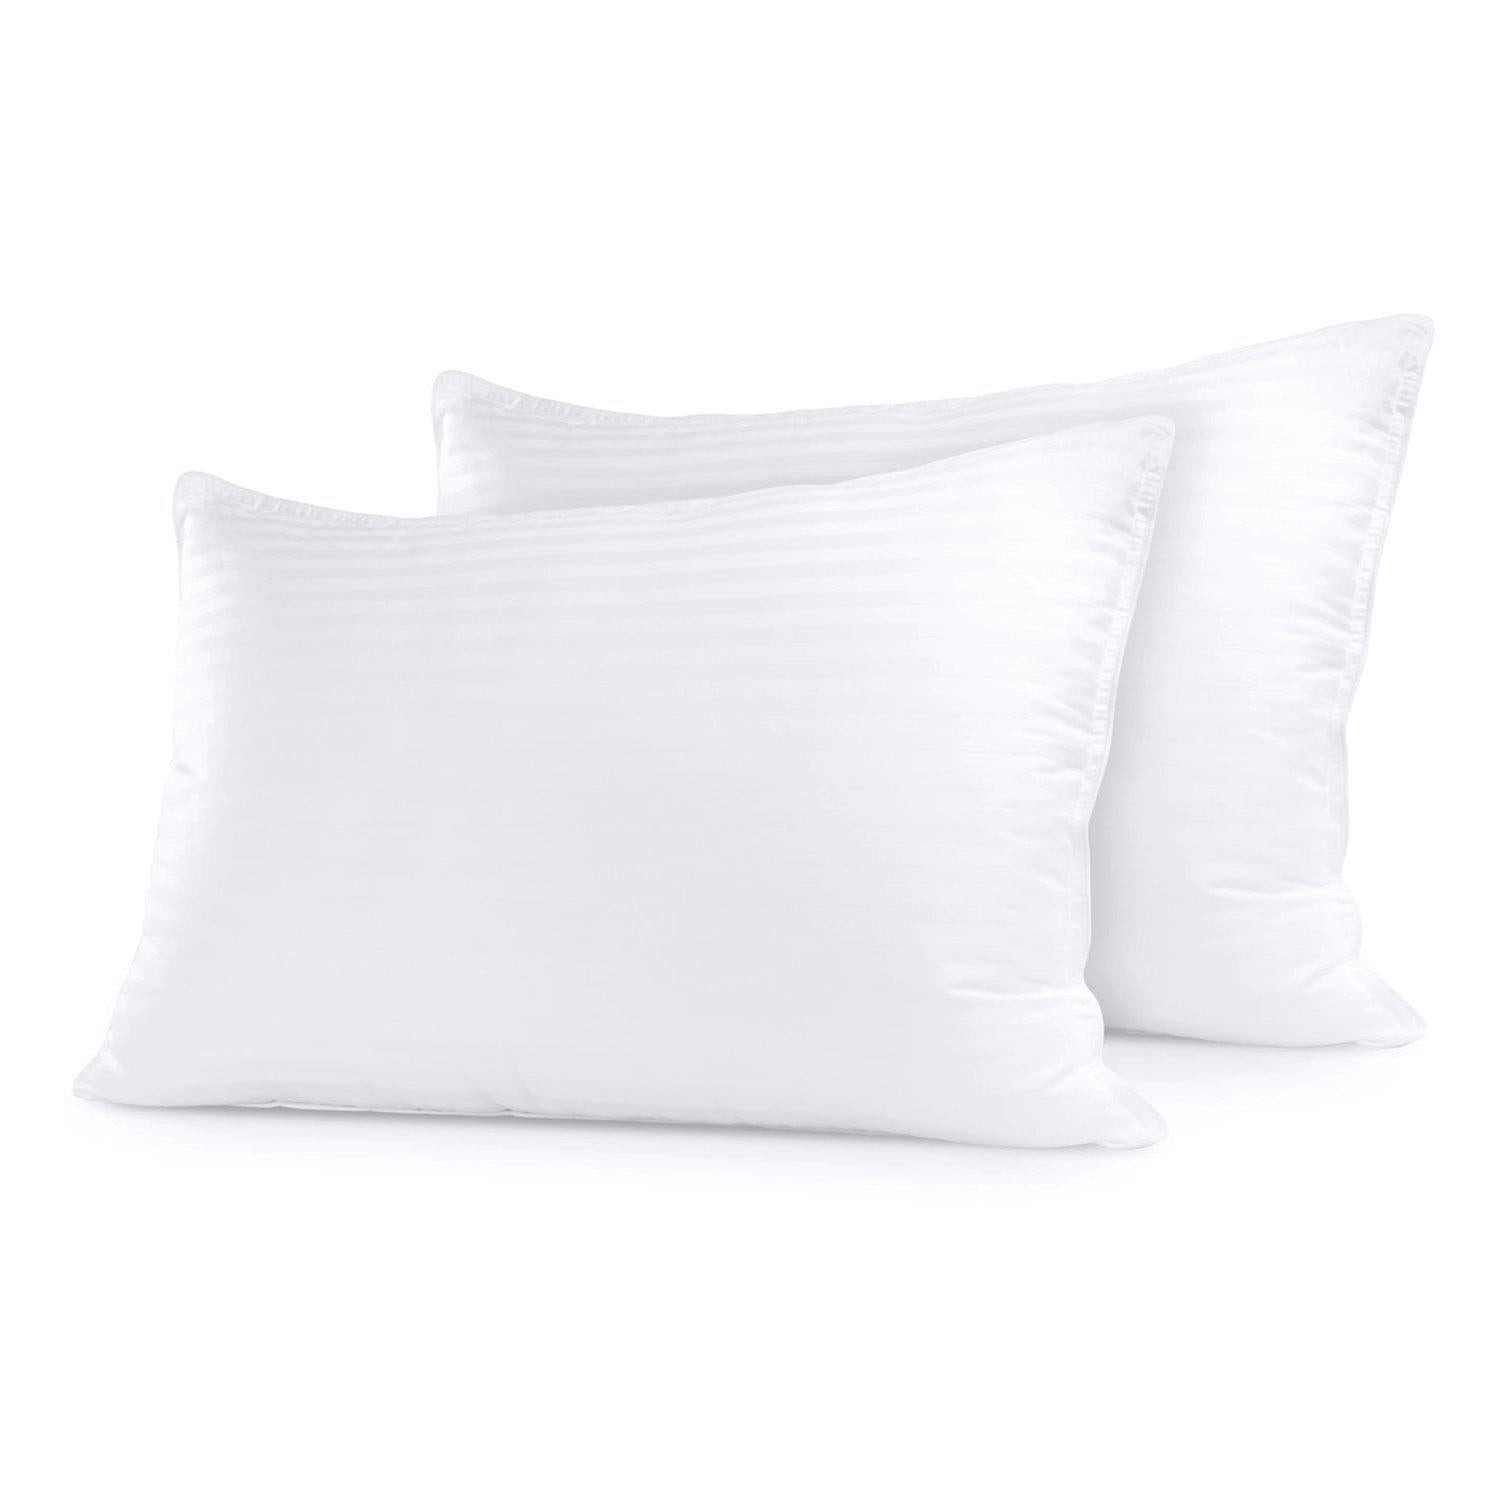 Sleep Restoration Pillow-Dust Mite Resistant